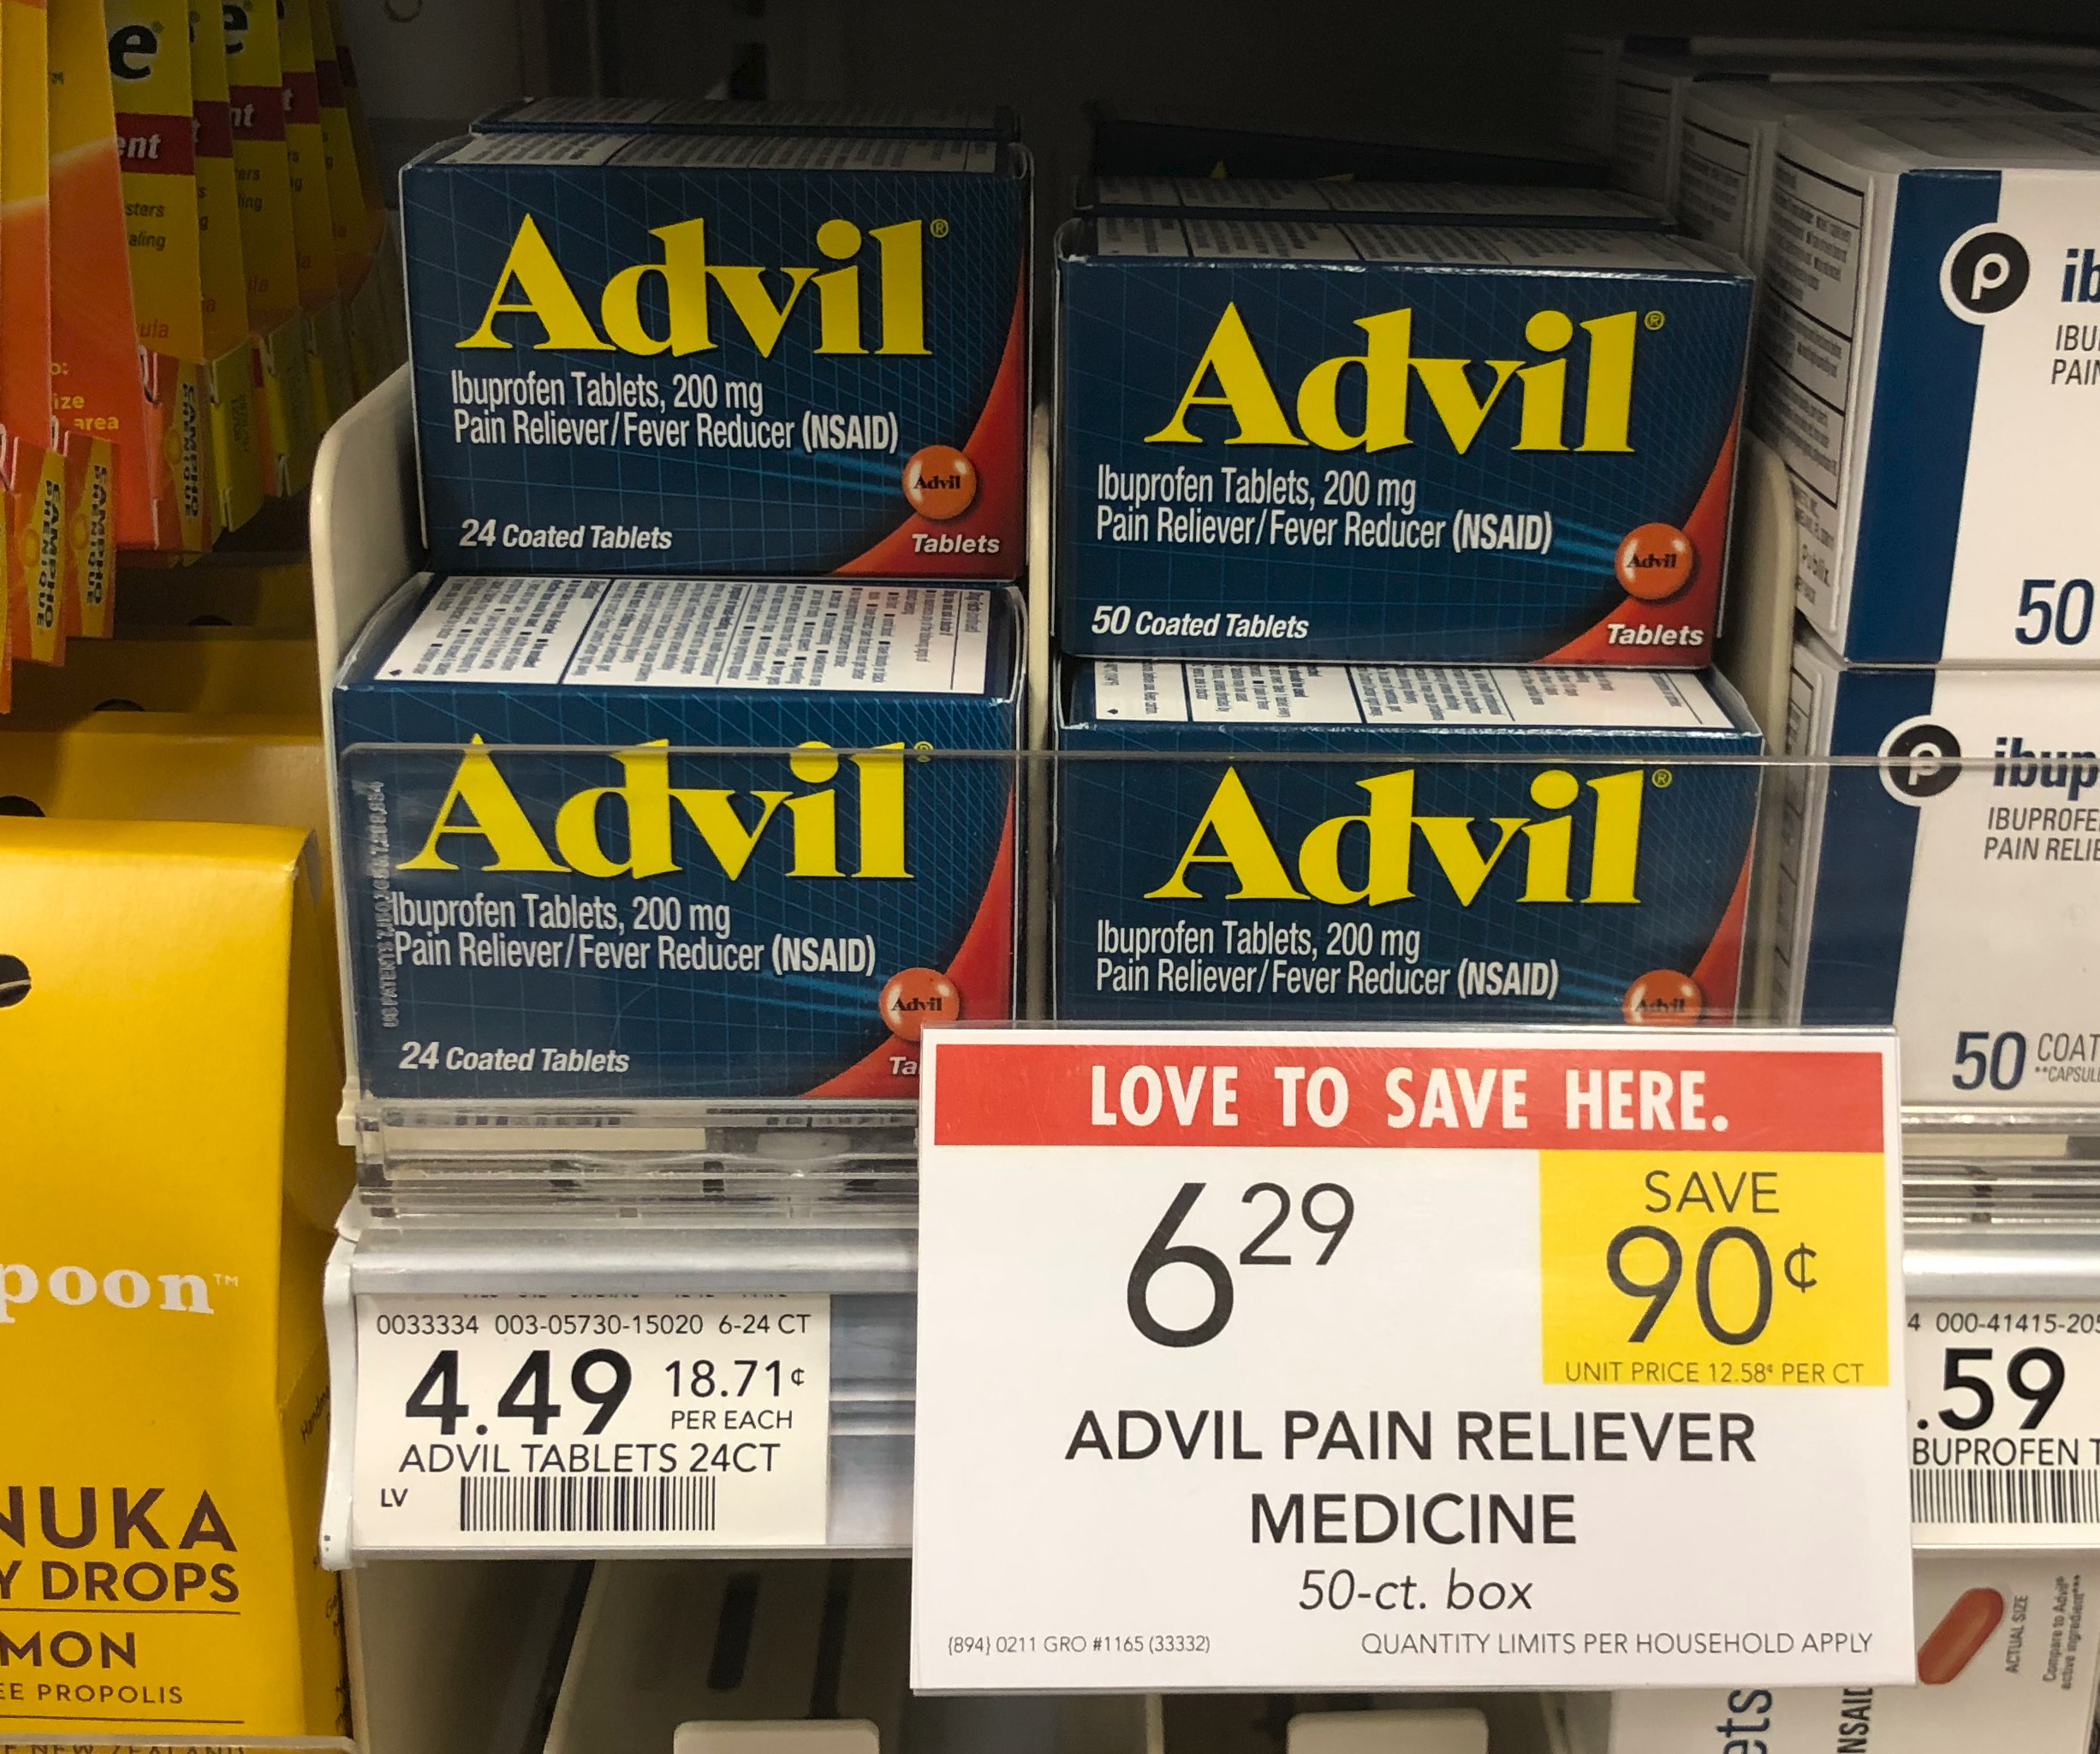 Advil 100 Count Bottles As Low As $3.49 At Publix (Regular Price $10.99!!) on I Heart Publix